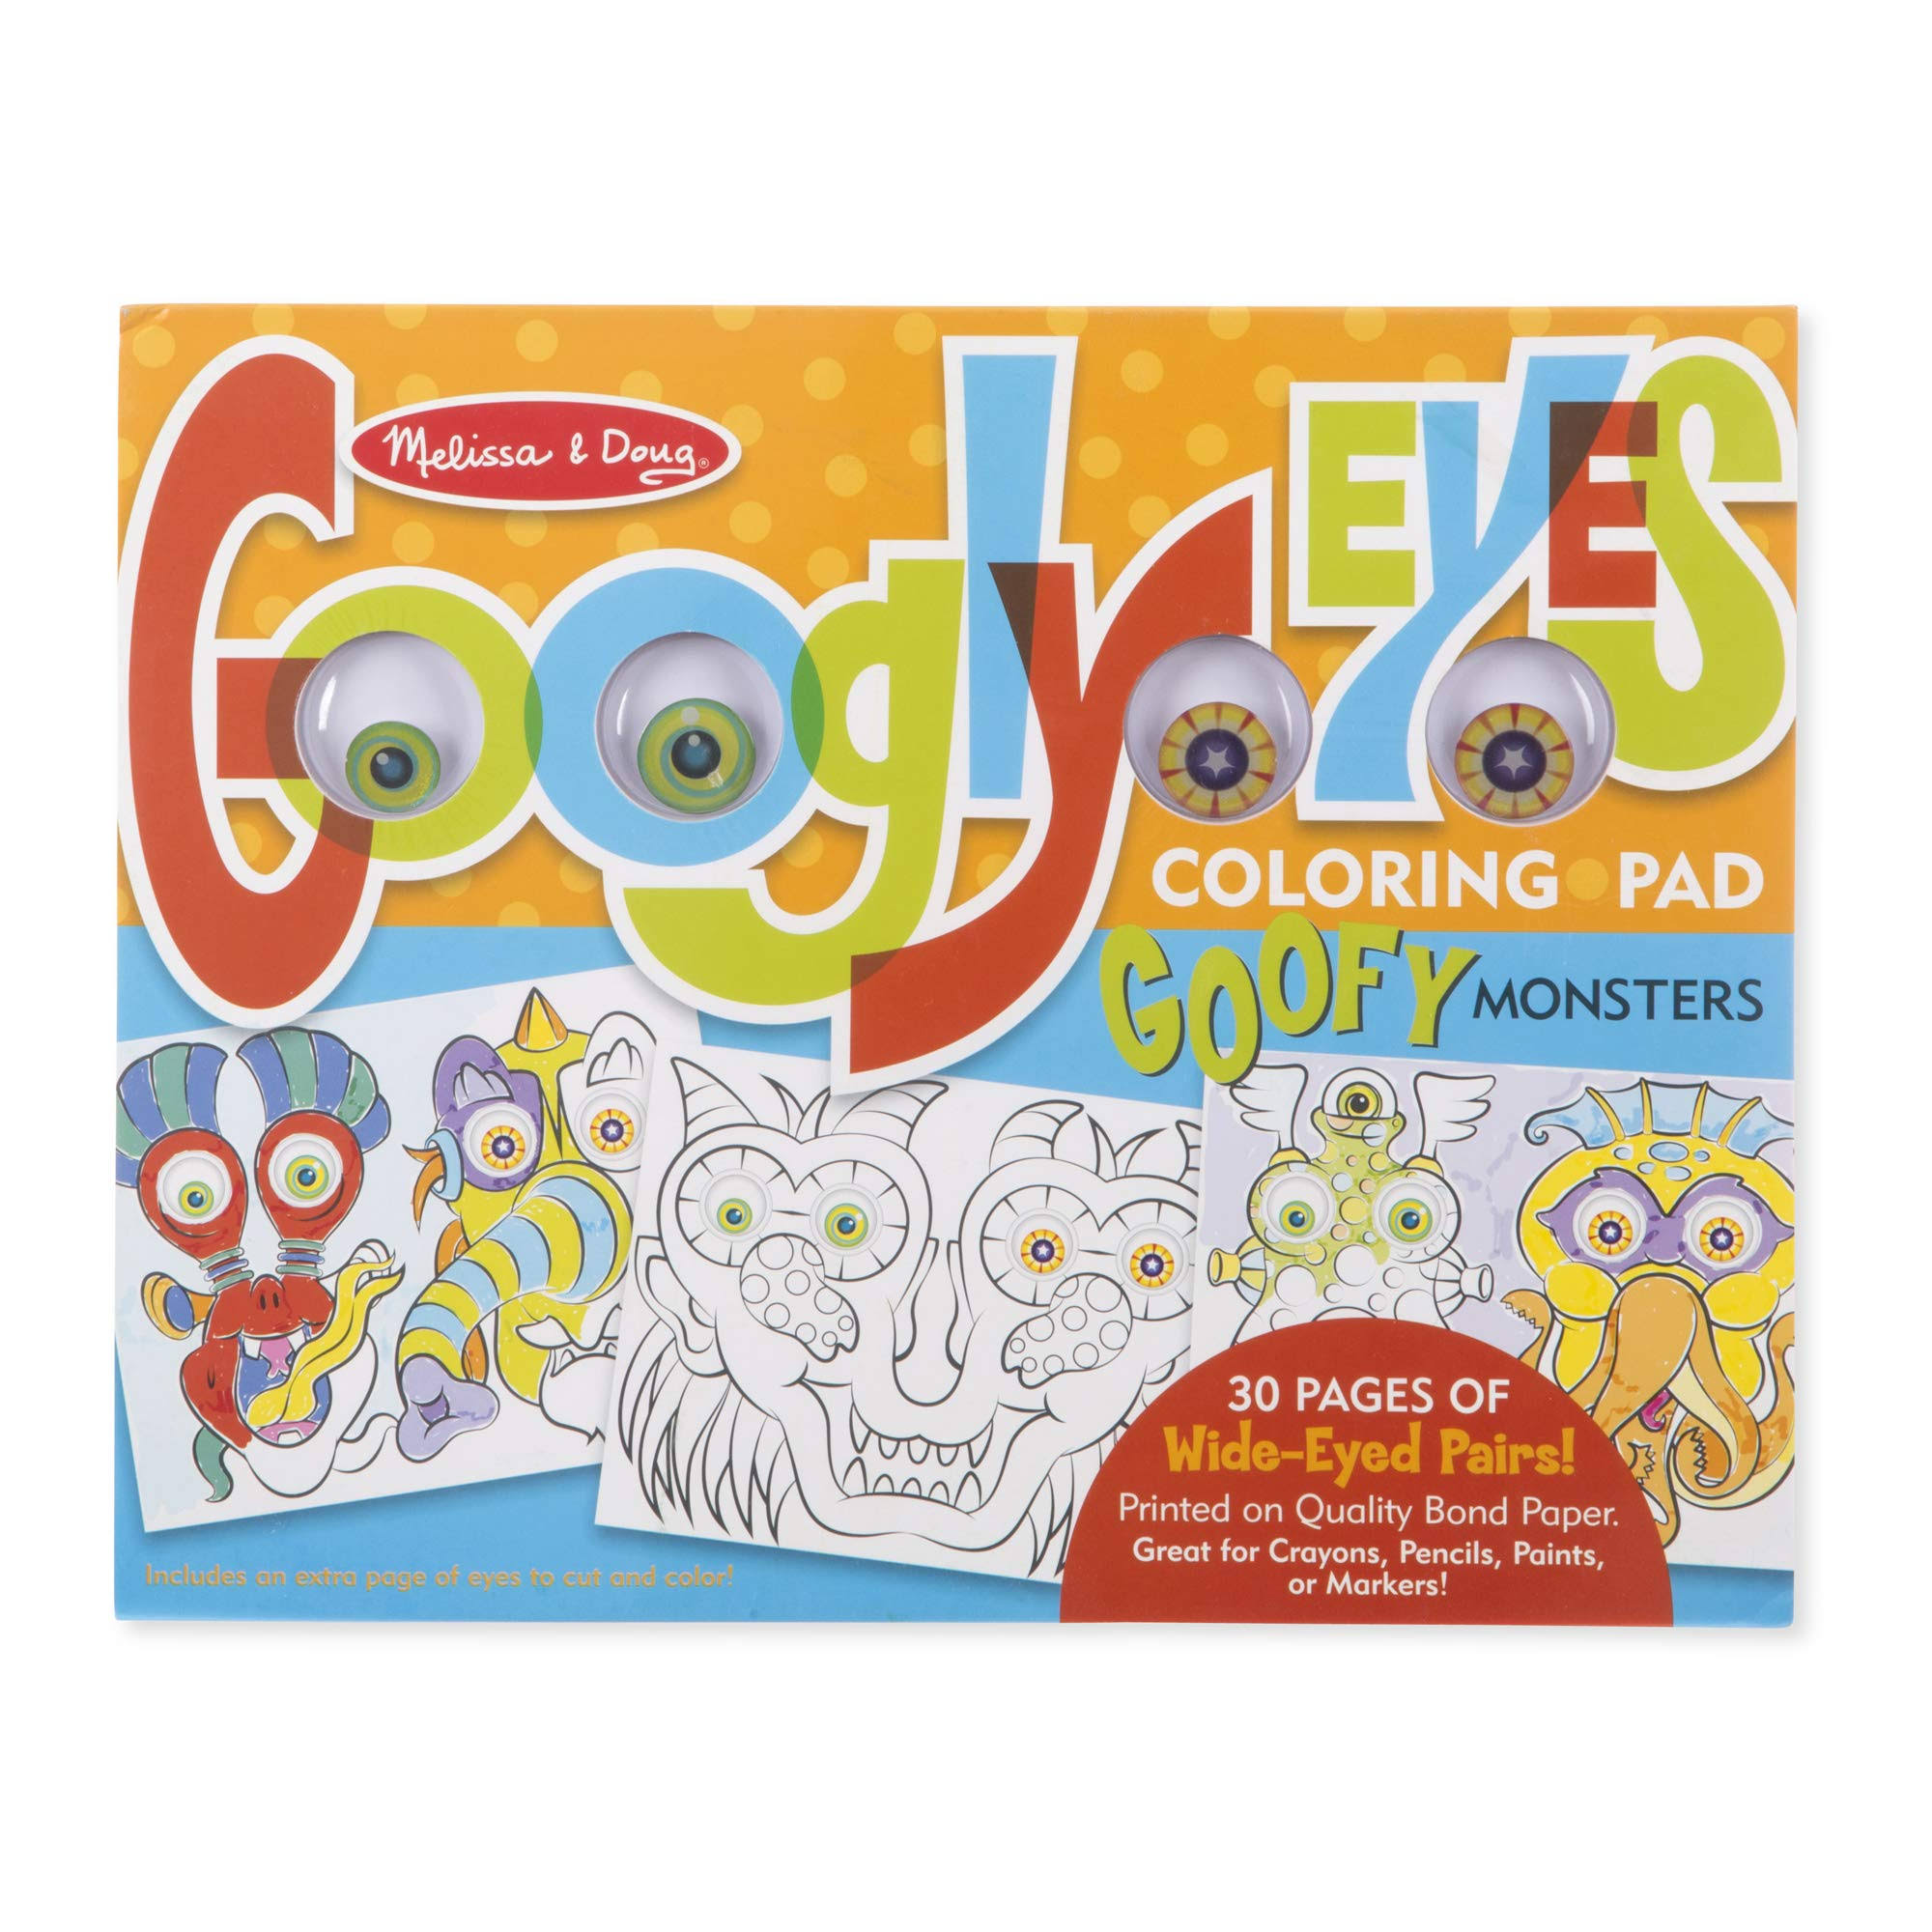 Melissa and Doug Googly Eyes Coloring Pad - 30 Pages